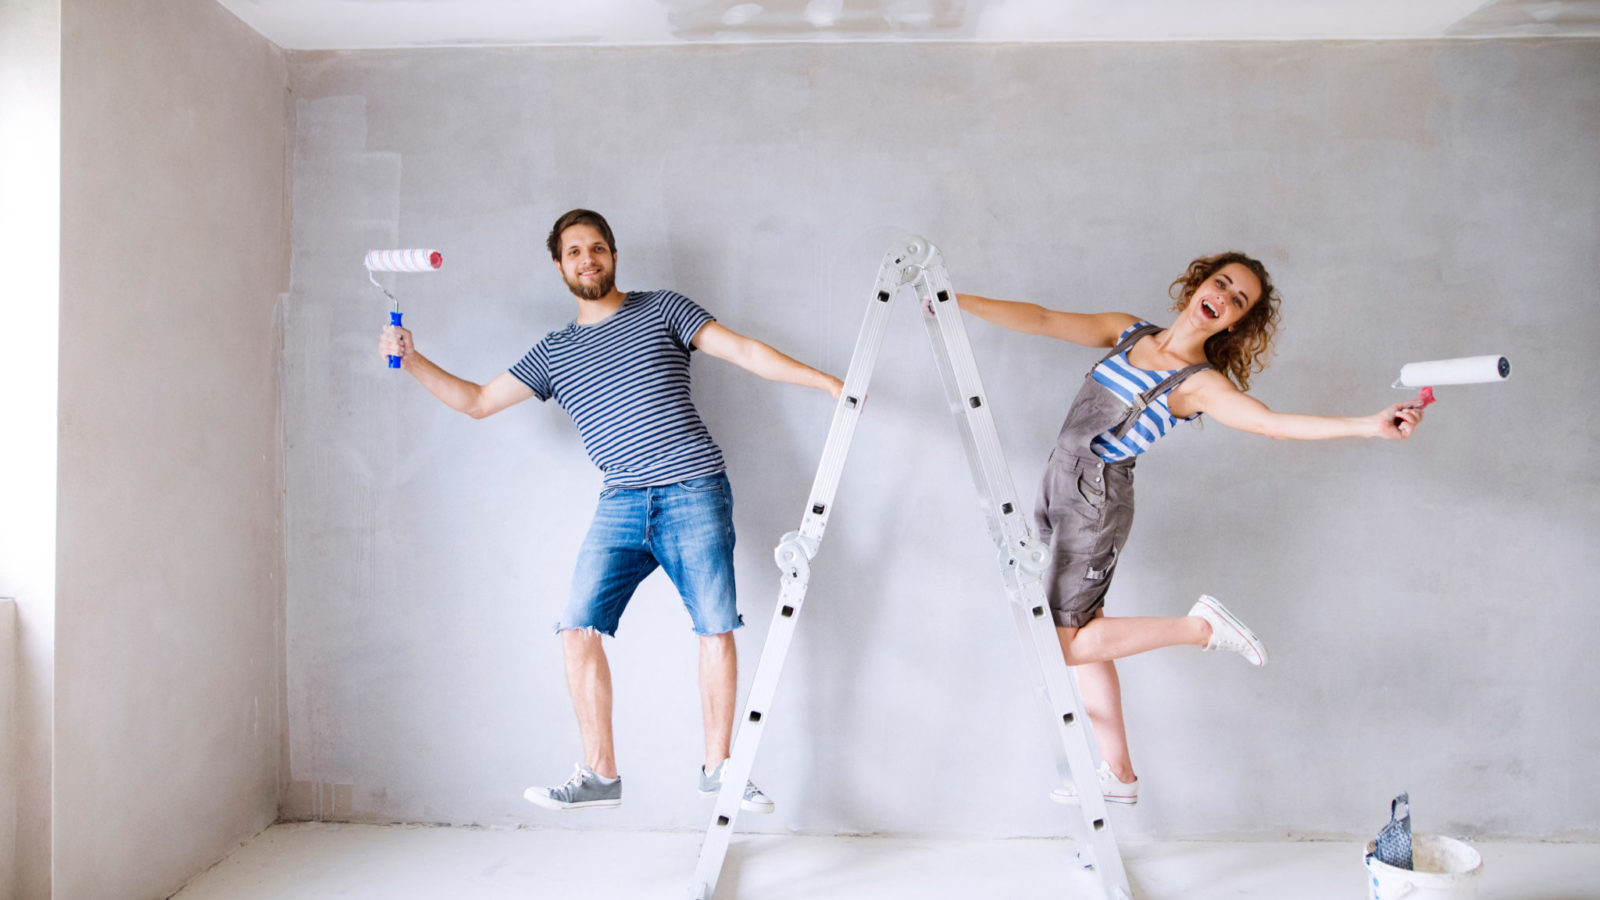 Couple on ladders painting walls